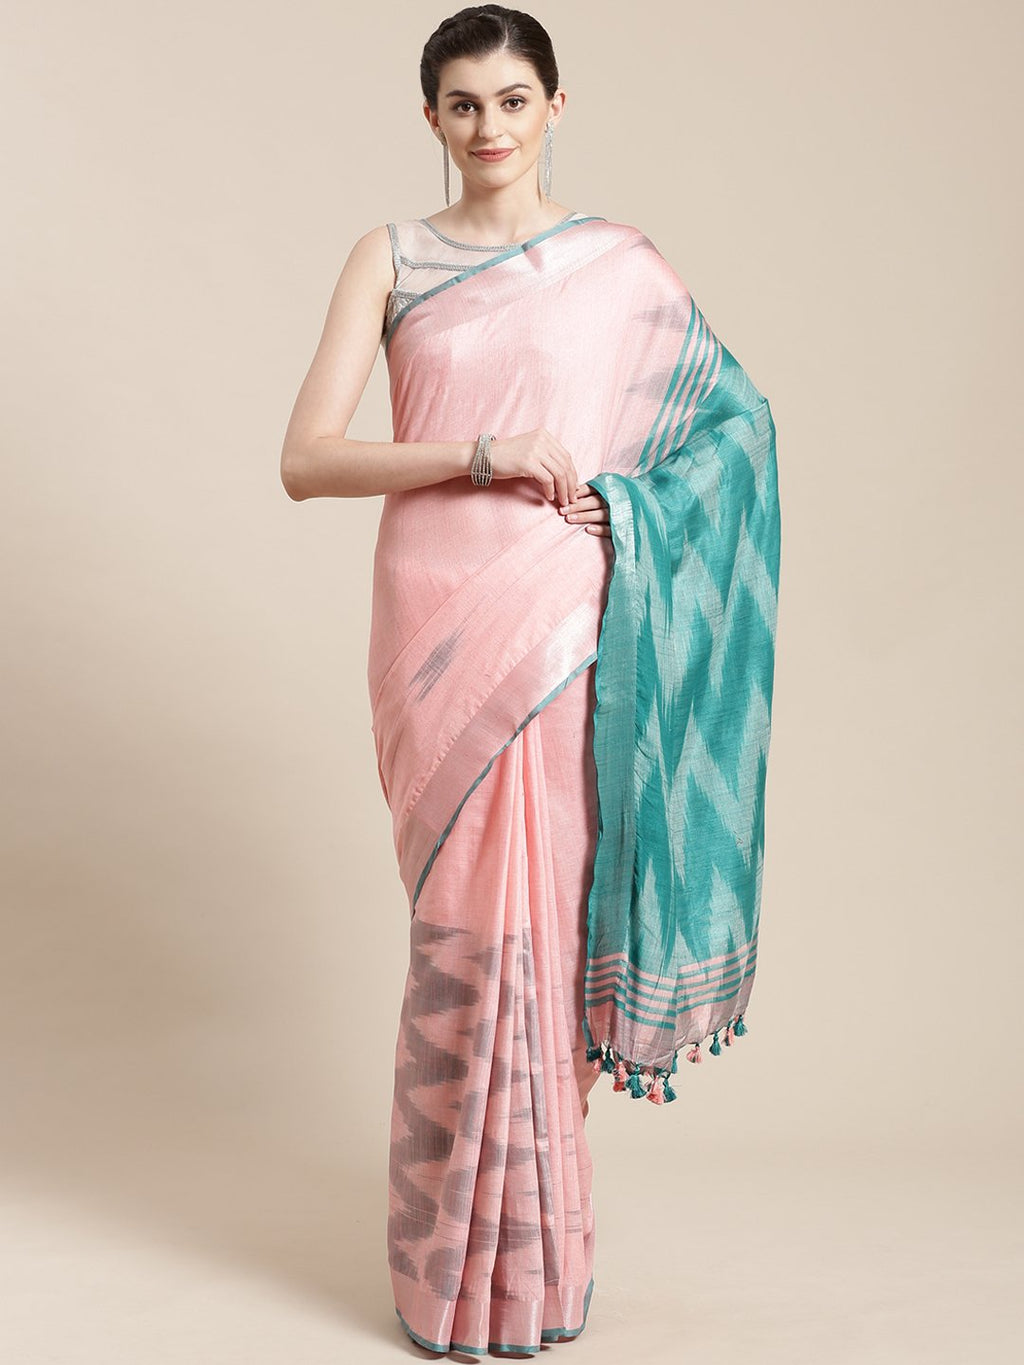 Linen Handwoven Saree and Blouse-Saree-Kalakari India-ALBGSA0037-Hand Woven, Linen, Sarees, Sustainable Fabrics, Traditional Weave-[Linen,Ethnic,wear,Fashionista,Handloom,Handicraft,Indigo,blockprint,block,print,Cotton,Chanderi,Blue, latest,classy,party,bollywood,trendy,summer,style,traditional,formal,elegant,unique,style,hand,block,print, dabu,booti,gift,present,glamorous,affordable,collectible,Sari,Saree,printed, holi, Diwali, birthday, anniversary, sustainable, organic, scarf, online, low pri